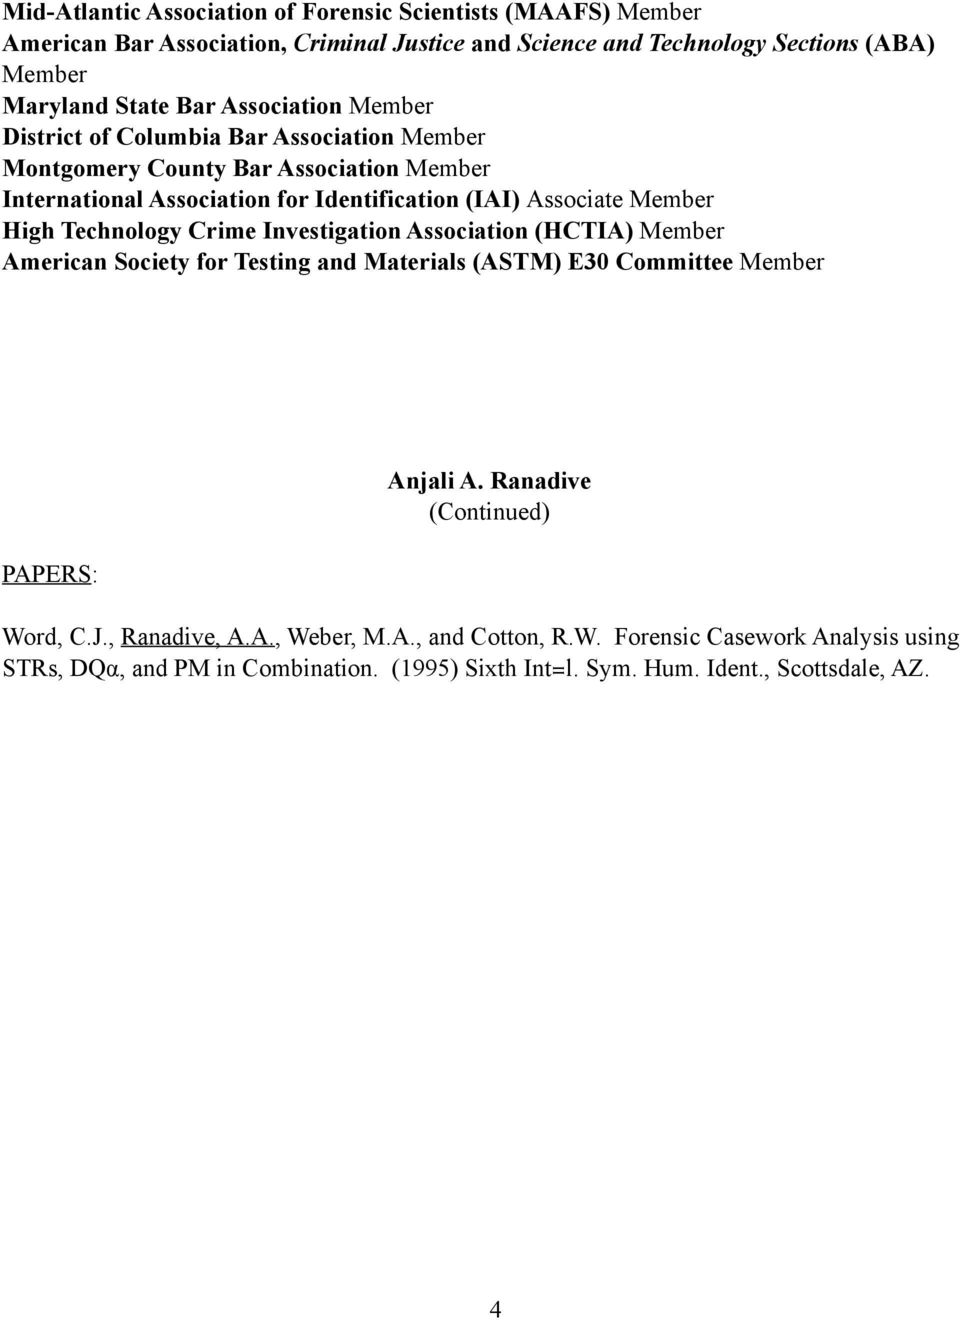 Associate Member High Technology Crime Investigation Association (HCTIA) Member American Society for Testing and Materials (ASTM) E30 Committee Member PAPERS: Word, C.